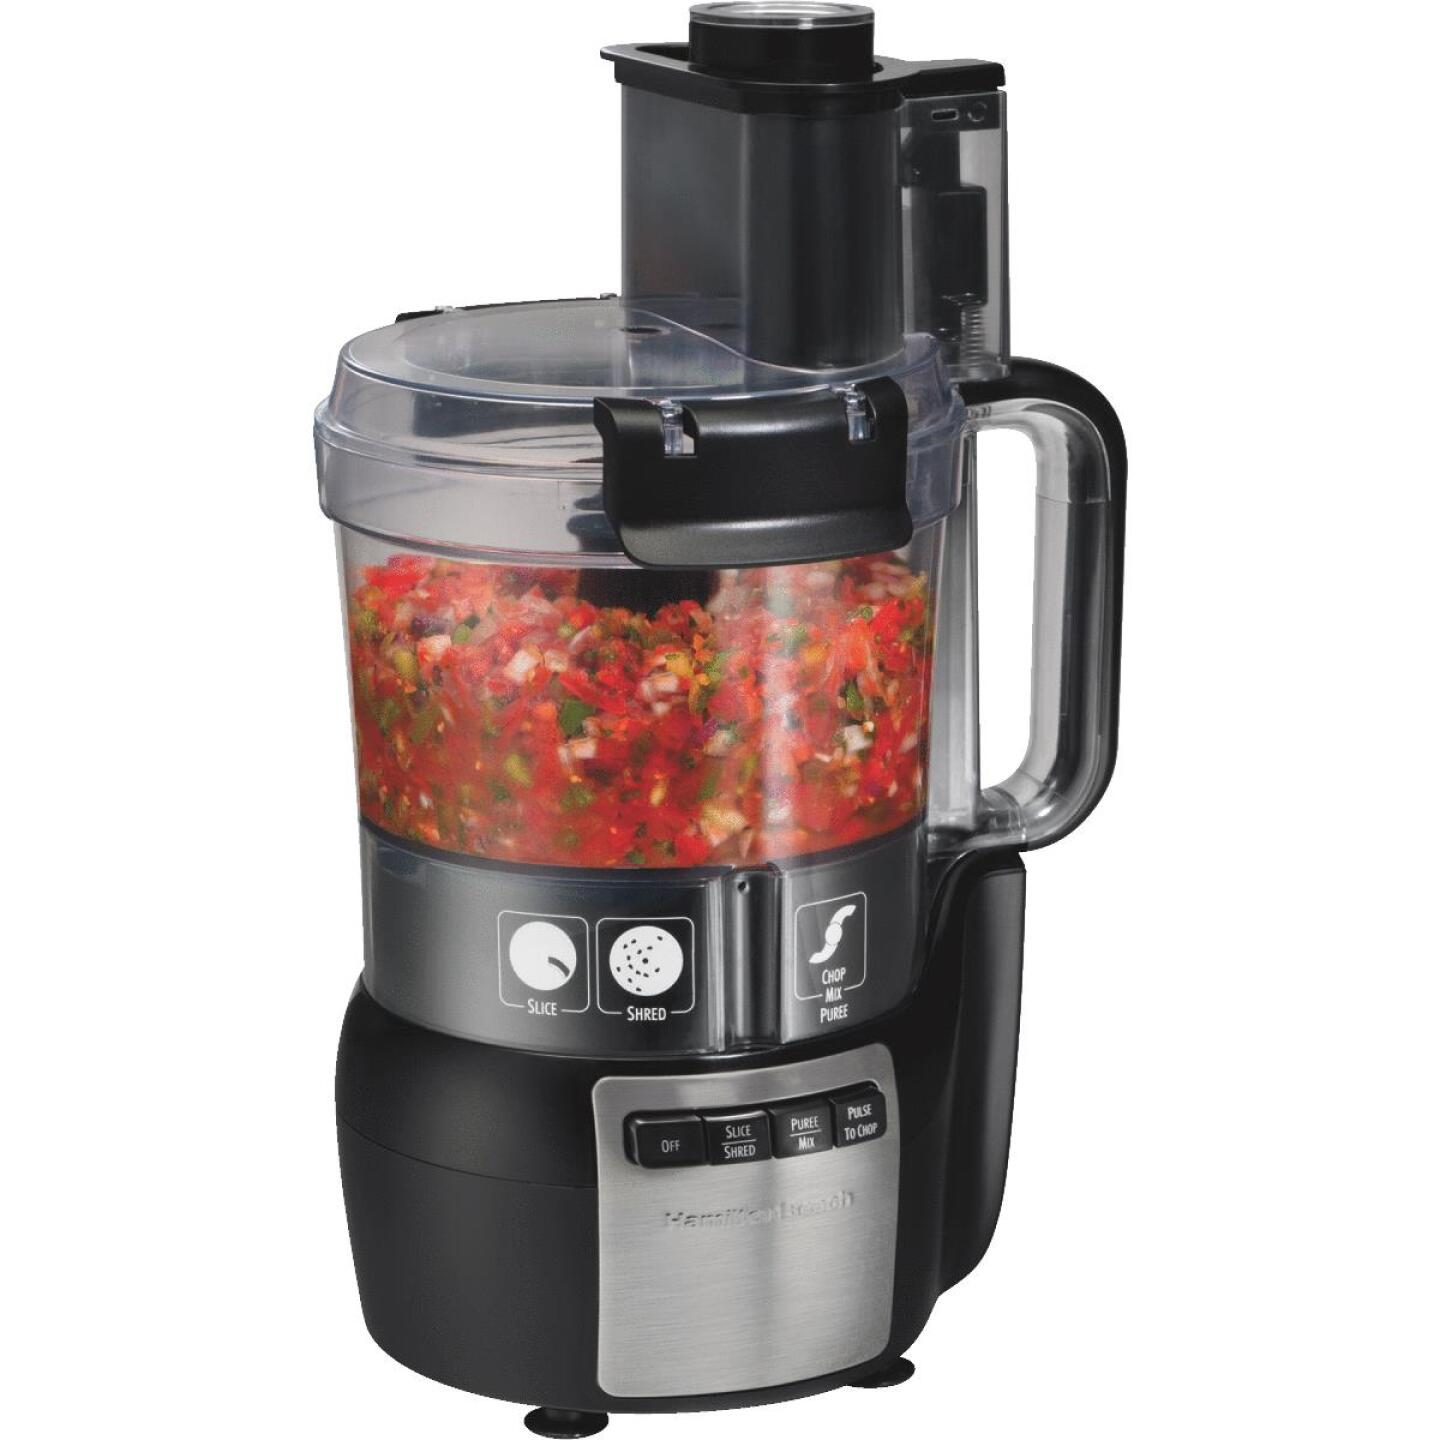 Hamilton Beach Stack & Snap 10-Cup Black Food Processor with Big Mouth Image 1